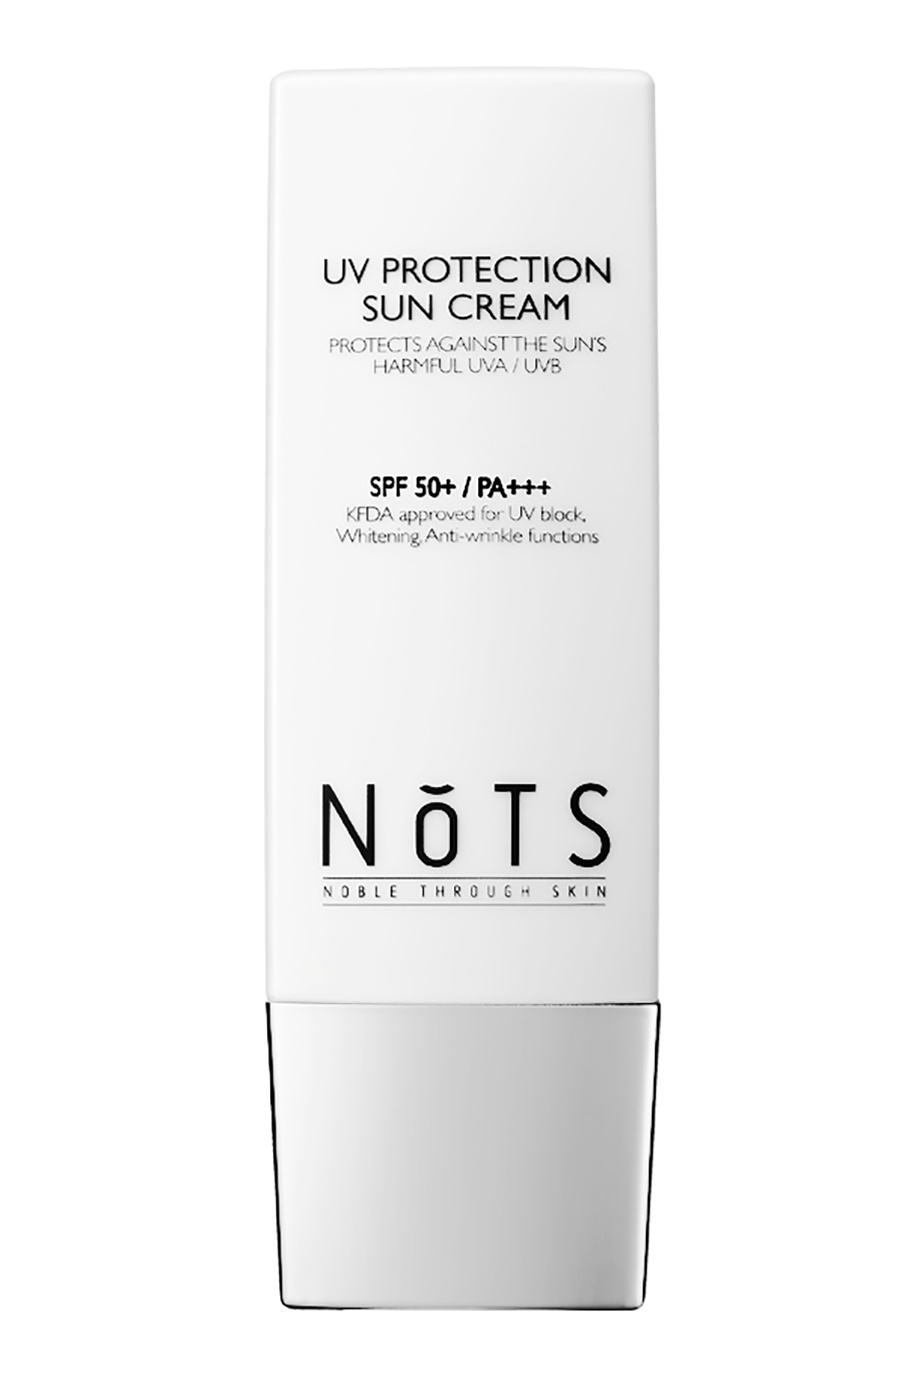 Солнцезащитный крем SPF50 / UV Protection Sun Cream SPF 50+/PA+++, 70 g NoTS (фото)